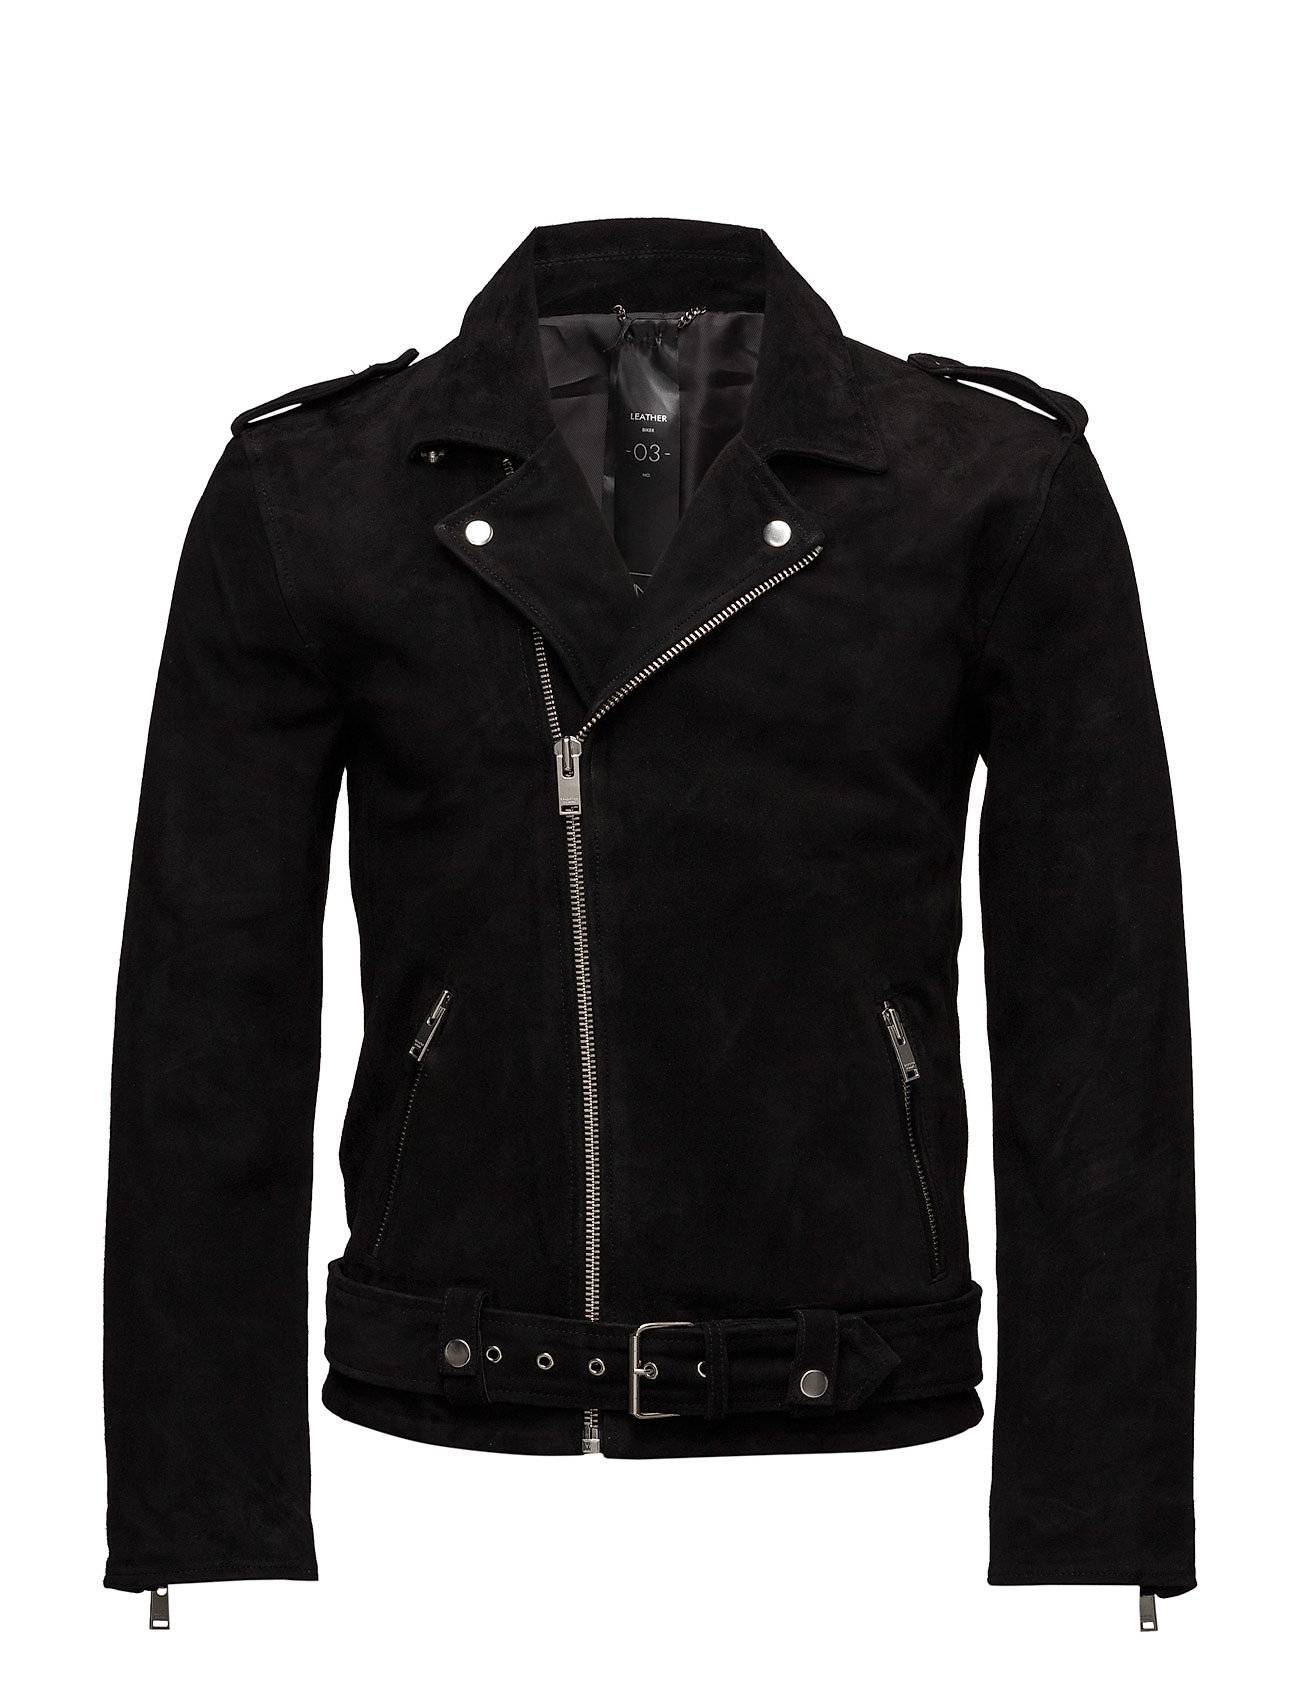 Selected Homme Shnsaint Suede Biker Jacket